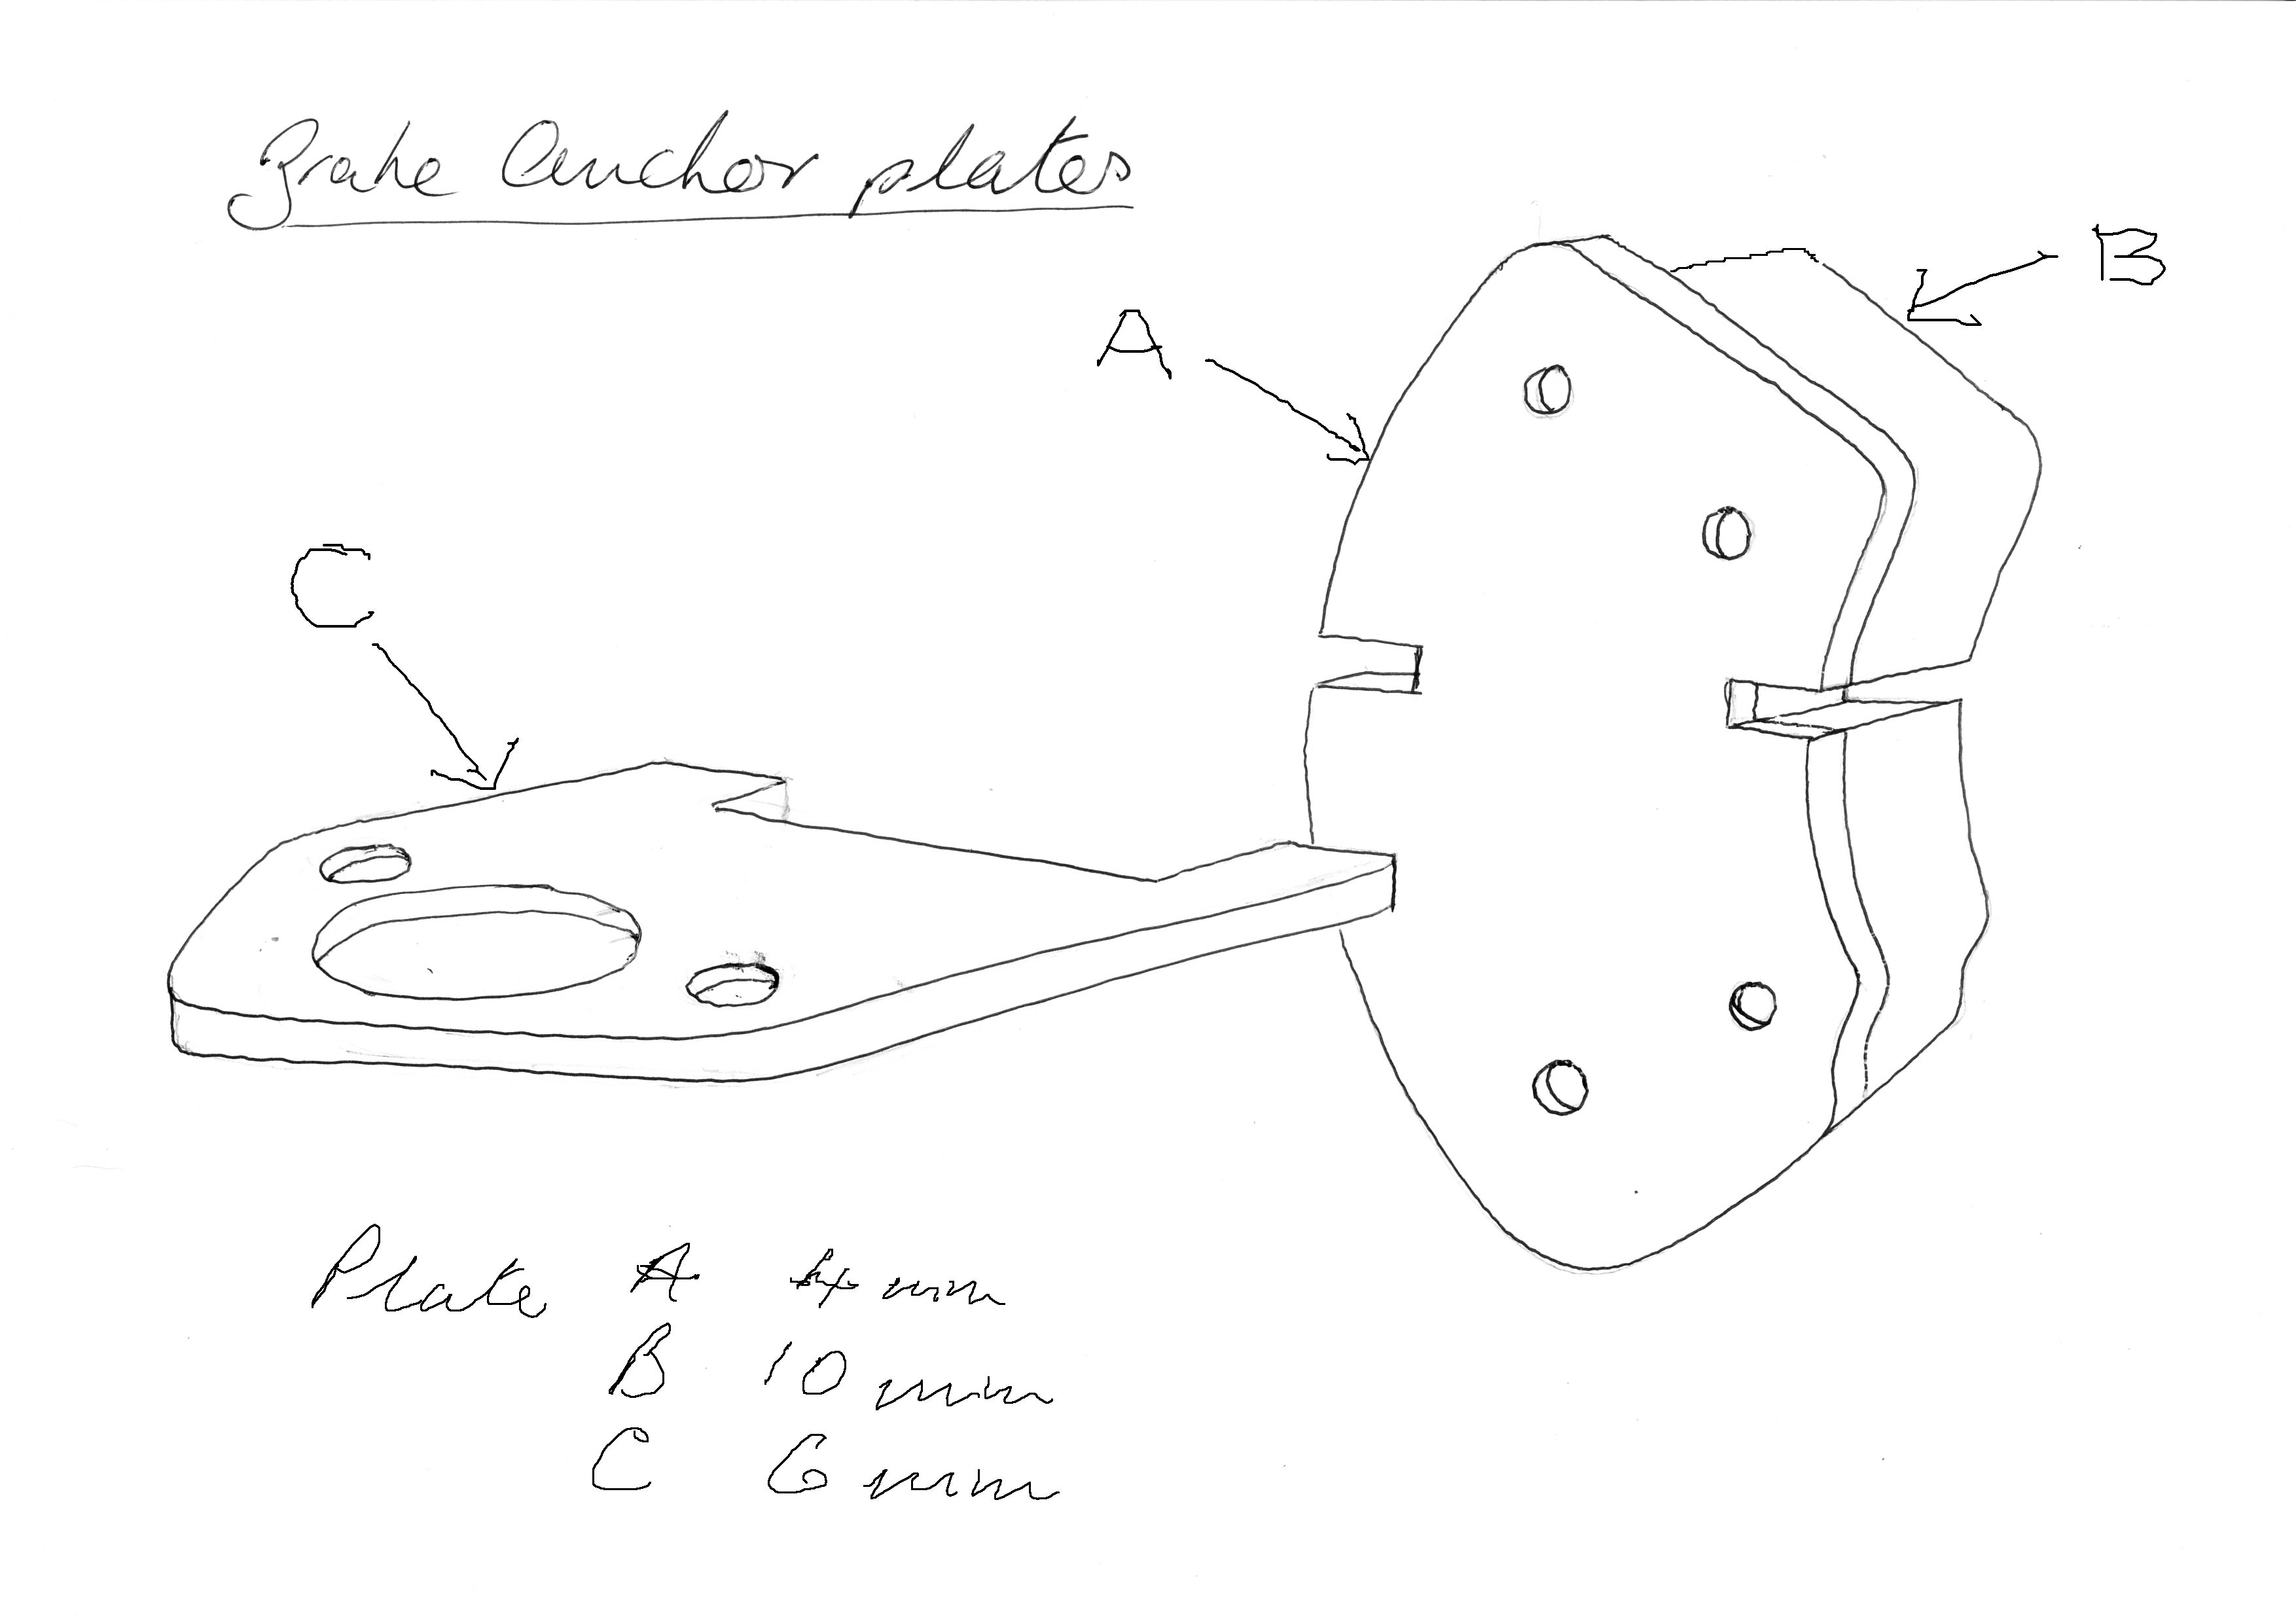 Austin 7 « A Special Builder's Notes « Page 4